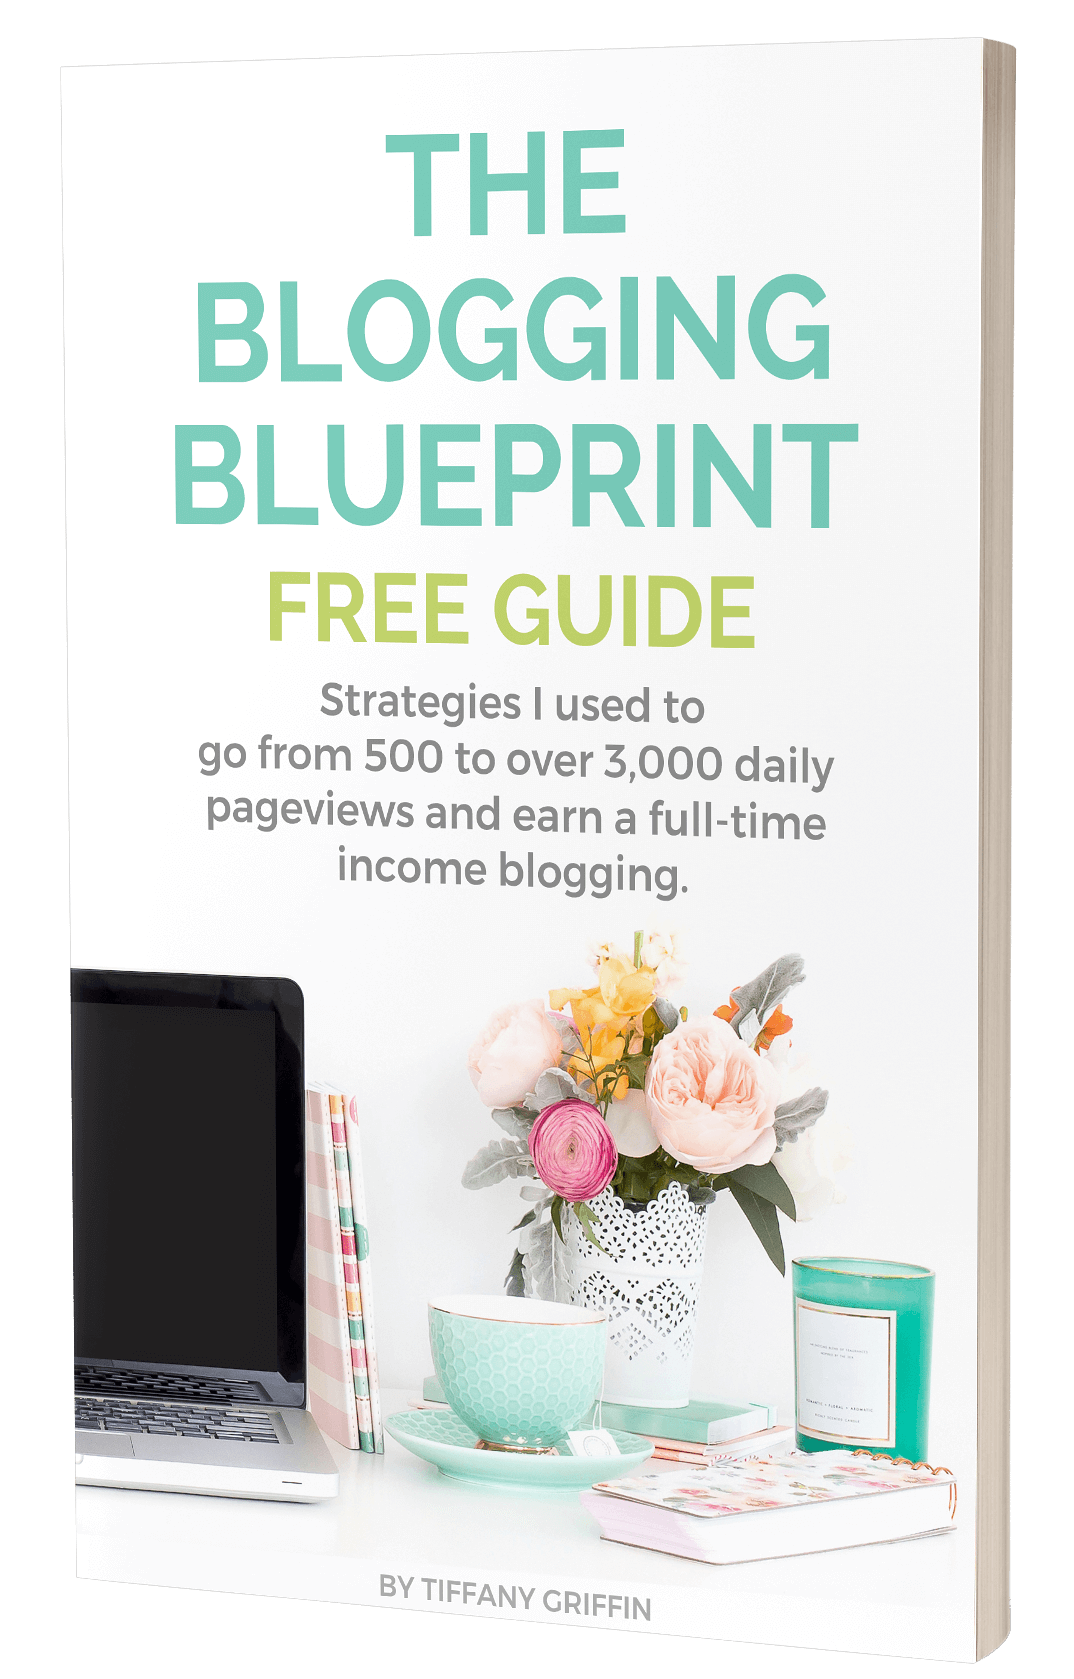 This free guide is a preview of my online blogging course, The Blogging Blueprint. In this guide, I share some of the tried-and-true strategies I've used to go from 500 to over 3,000 daily pageviews and earn a full-time income blogging. #bloggingtips